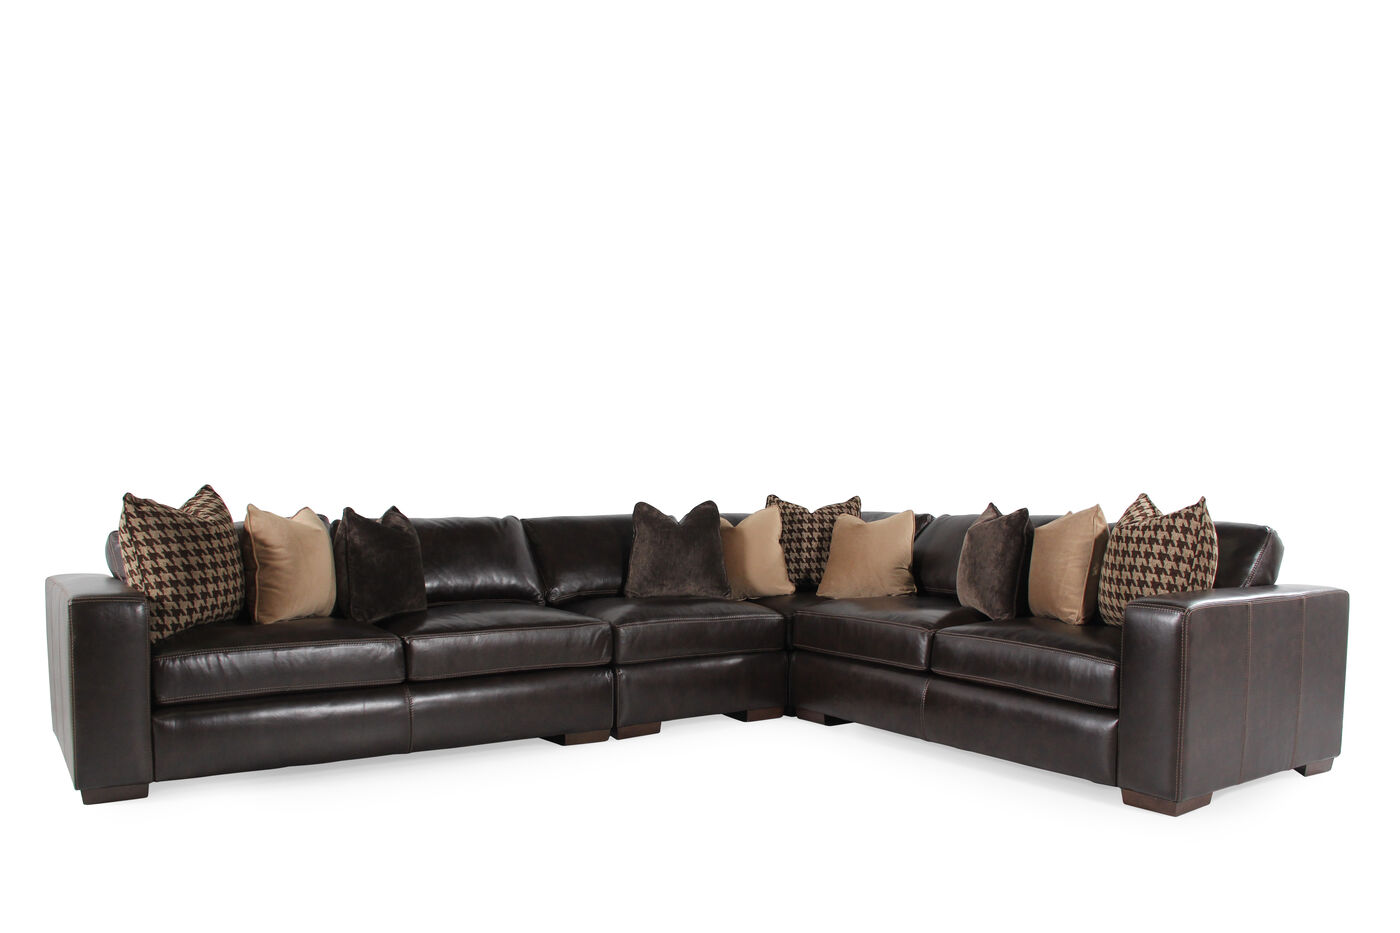 Mathis Brothers Leather Sofas Mathis Brothers Leather